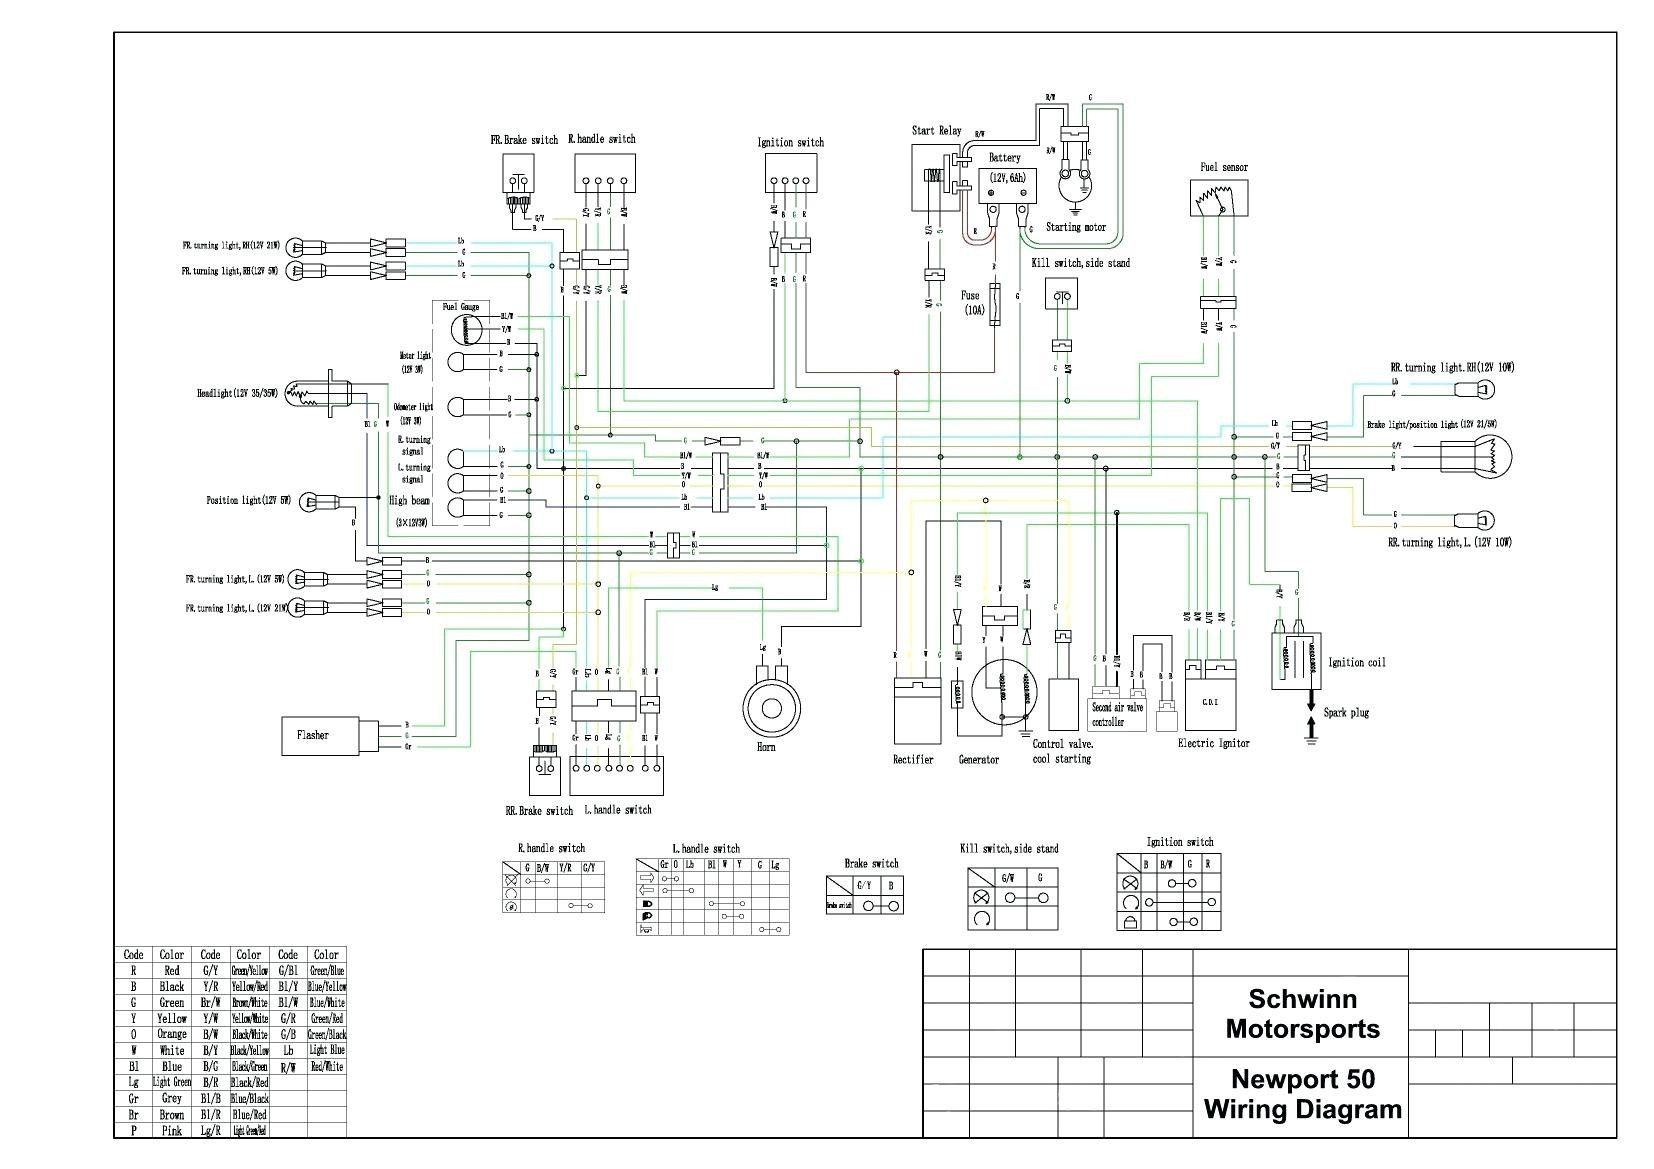 fancy scooter 49cc wiring diagram wiring diagrams schematic2007 wildfire scooter wiring diagram circuit diagram template 49cc mini chopper wiring diagram fancy scooter 49cc wiring diagram